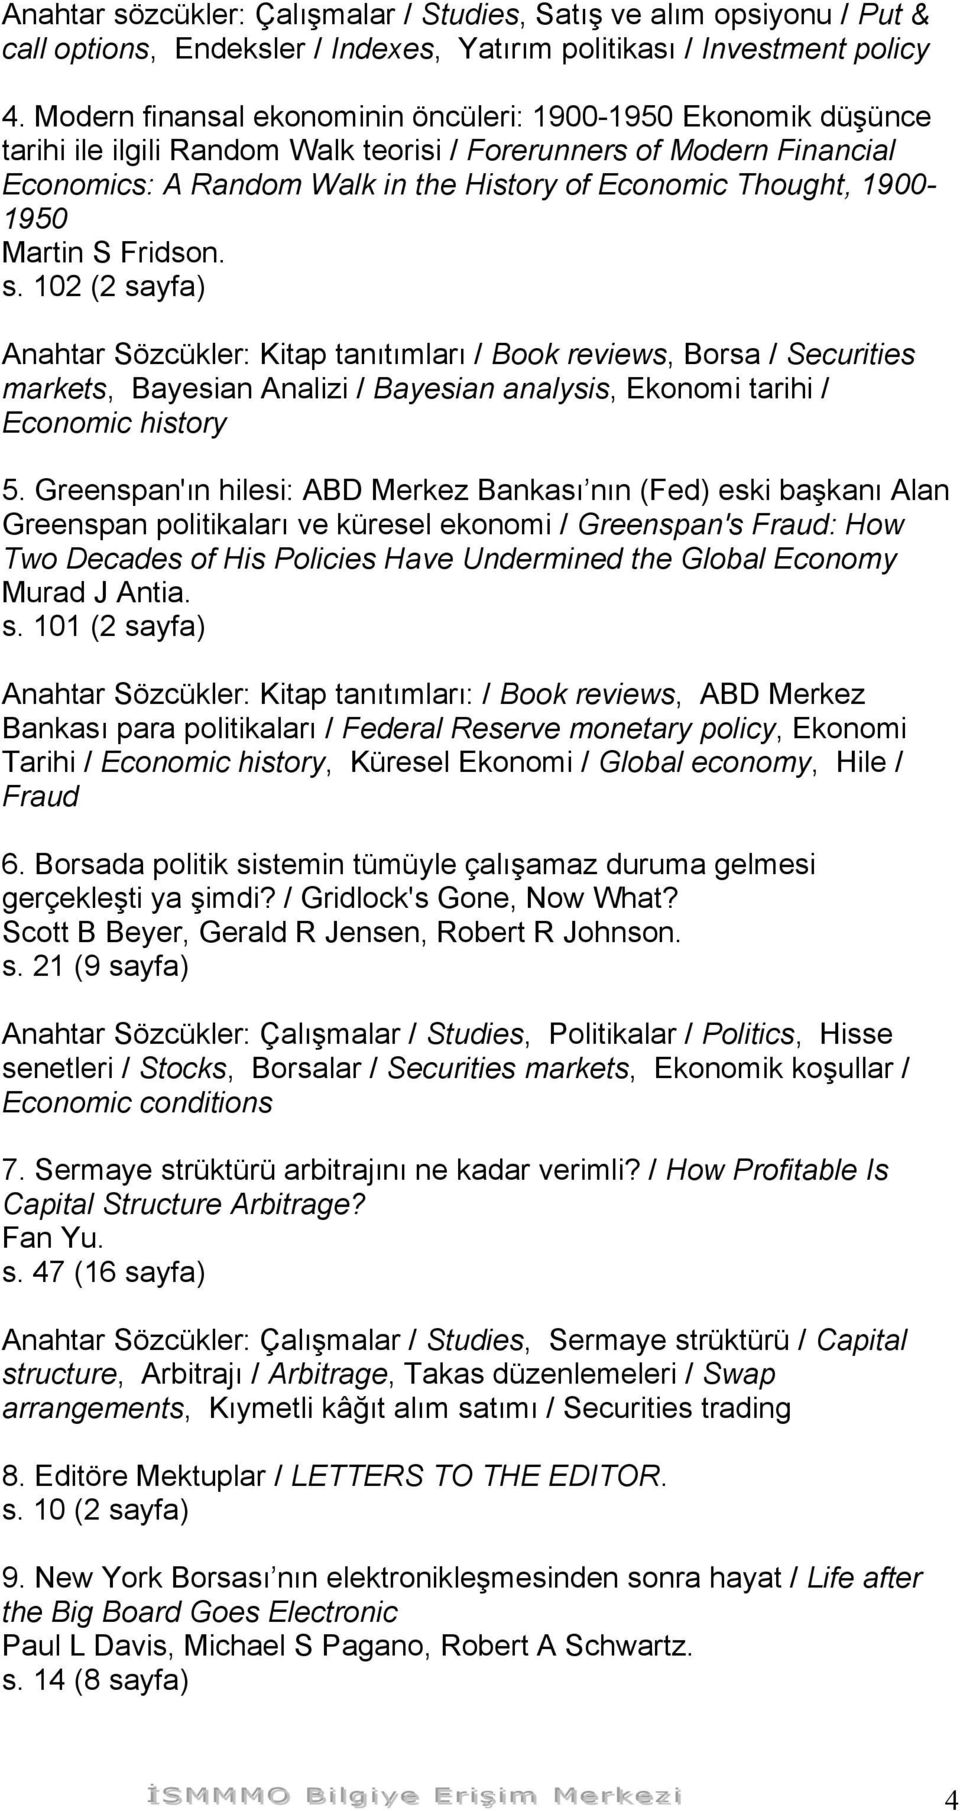 1900-1950 Martin S Fridson. s. 102 (2 sayfa) Anahtar Sözcükler: Kitap tanıtımları / Book reviews, Borsa / Securities markets, Bayesian Analizi / Bayesian analysis, Ekonomi tarihi / Economic history 5.